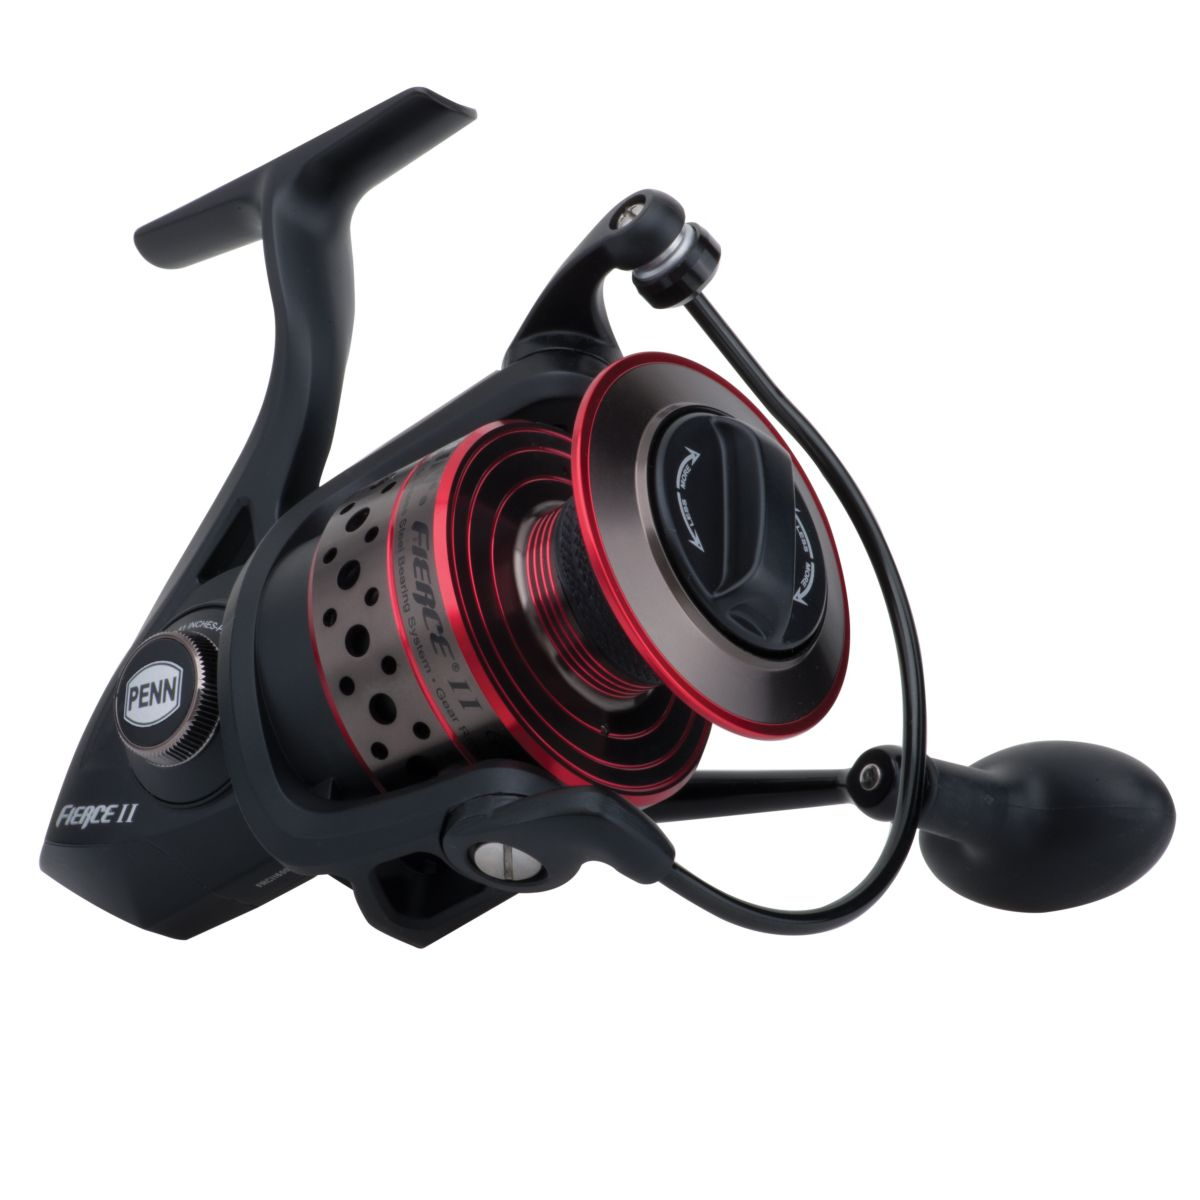 Penn Fierce II FRCII8000 Spinning Reel